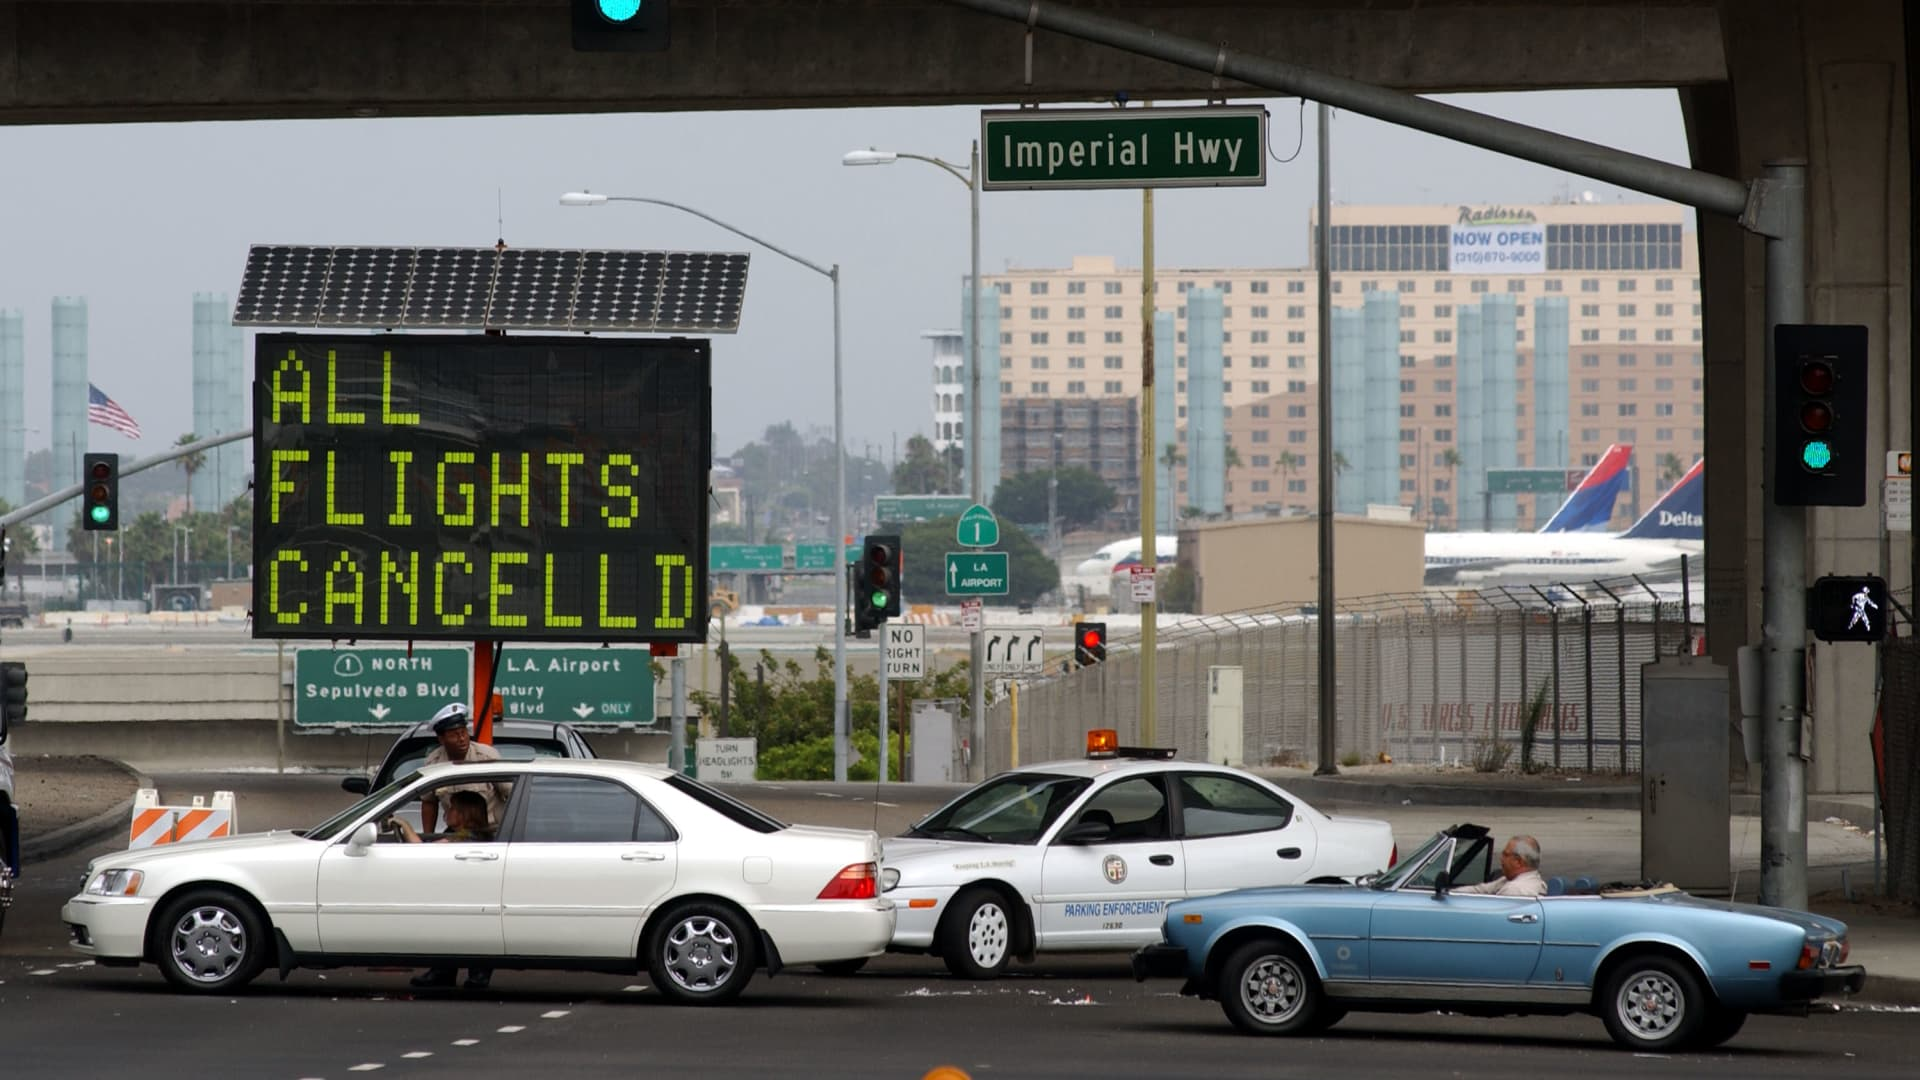 Cars sit outside Los Angeles International Airport (LAX), which is closed because of the air attacks on New York and Washington, DC, September 11, 2001, in Los Angeles, CA.